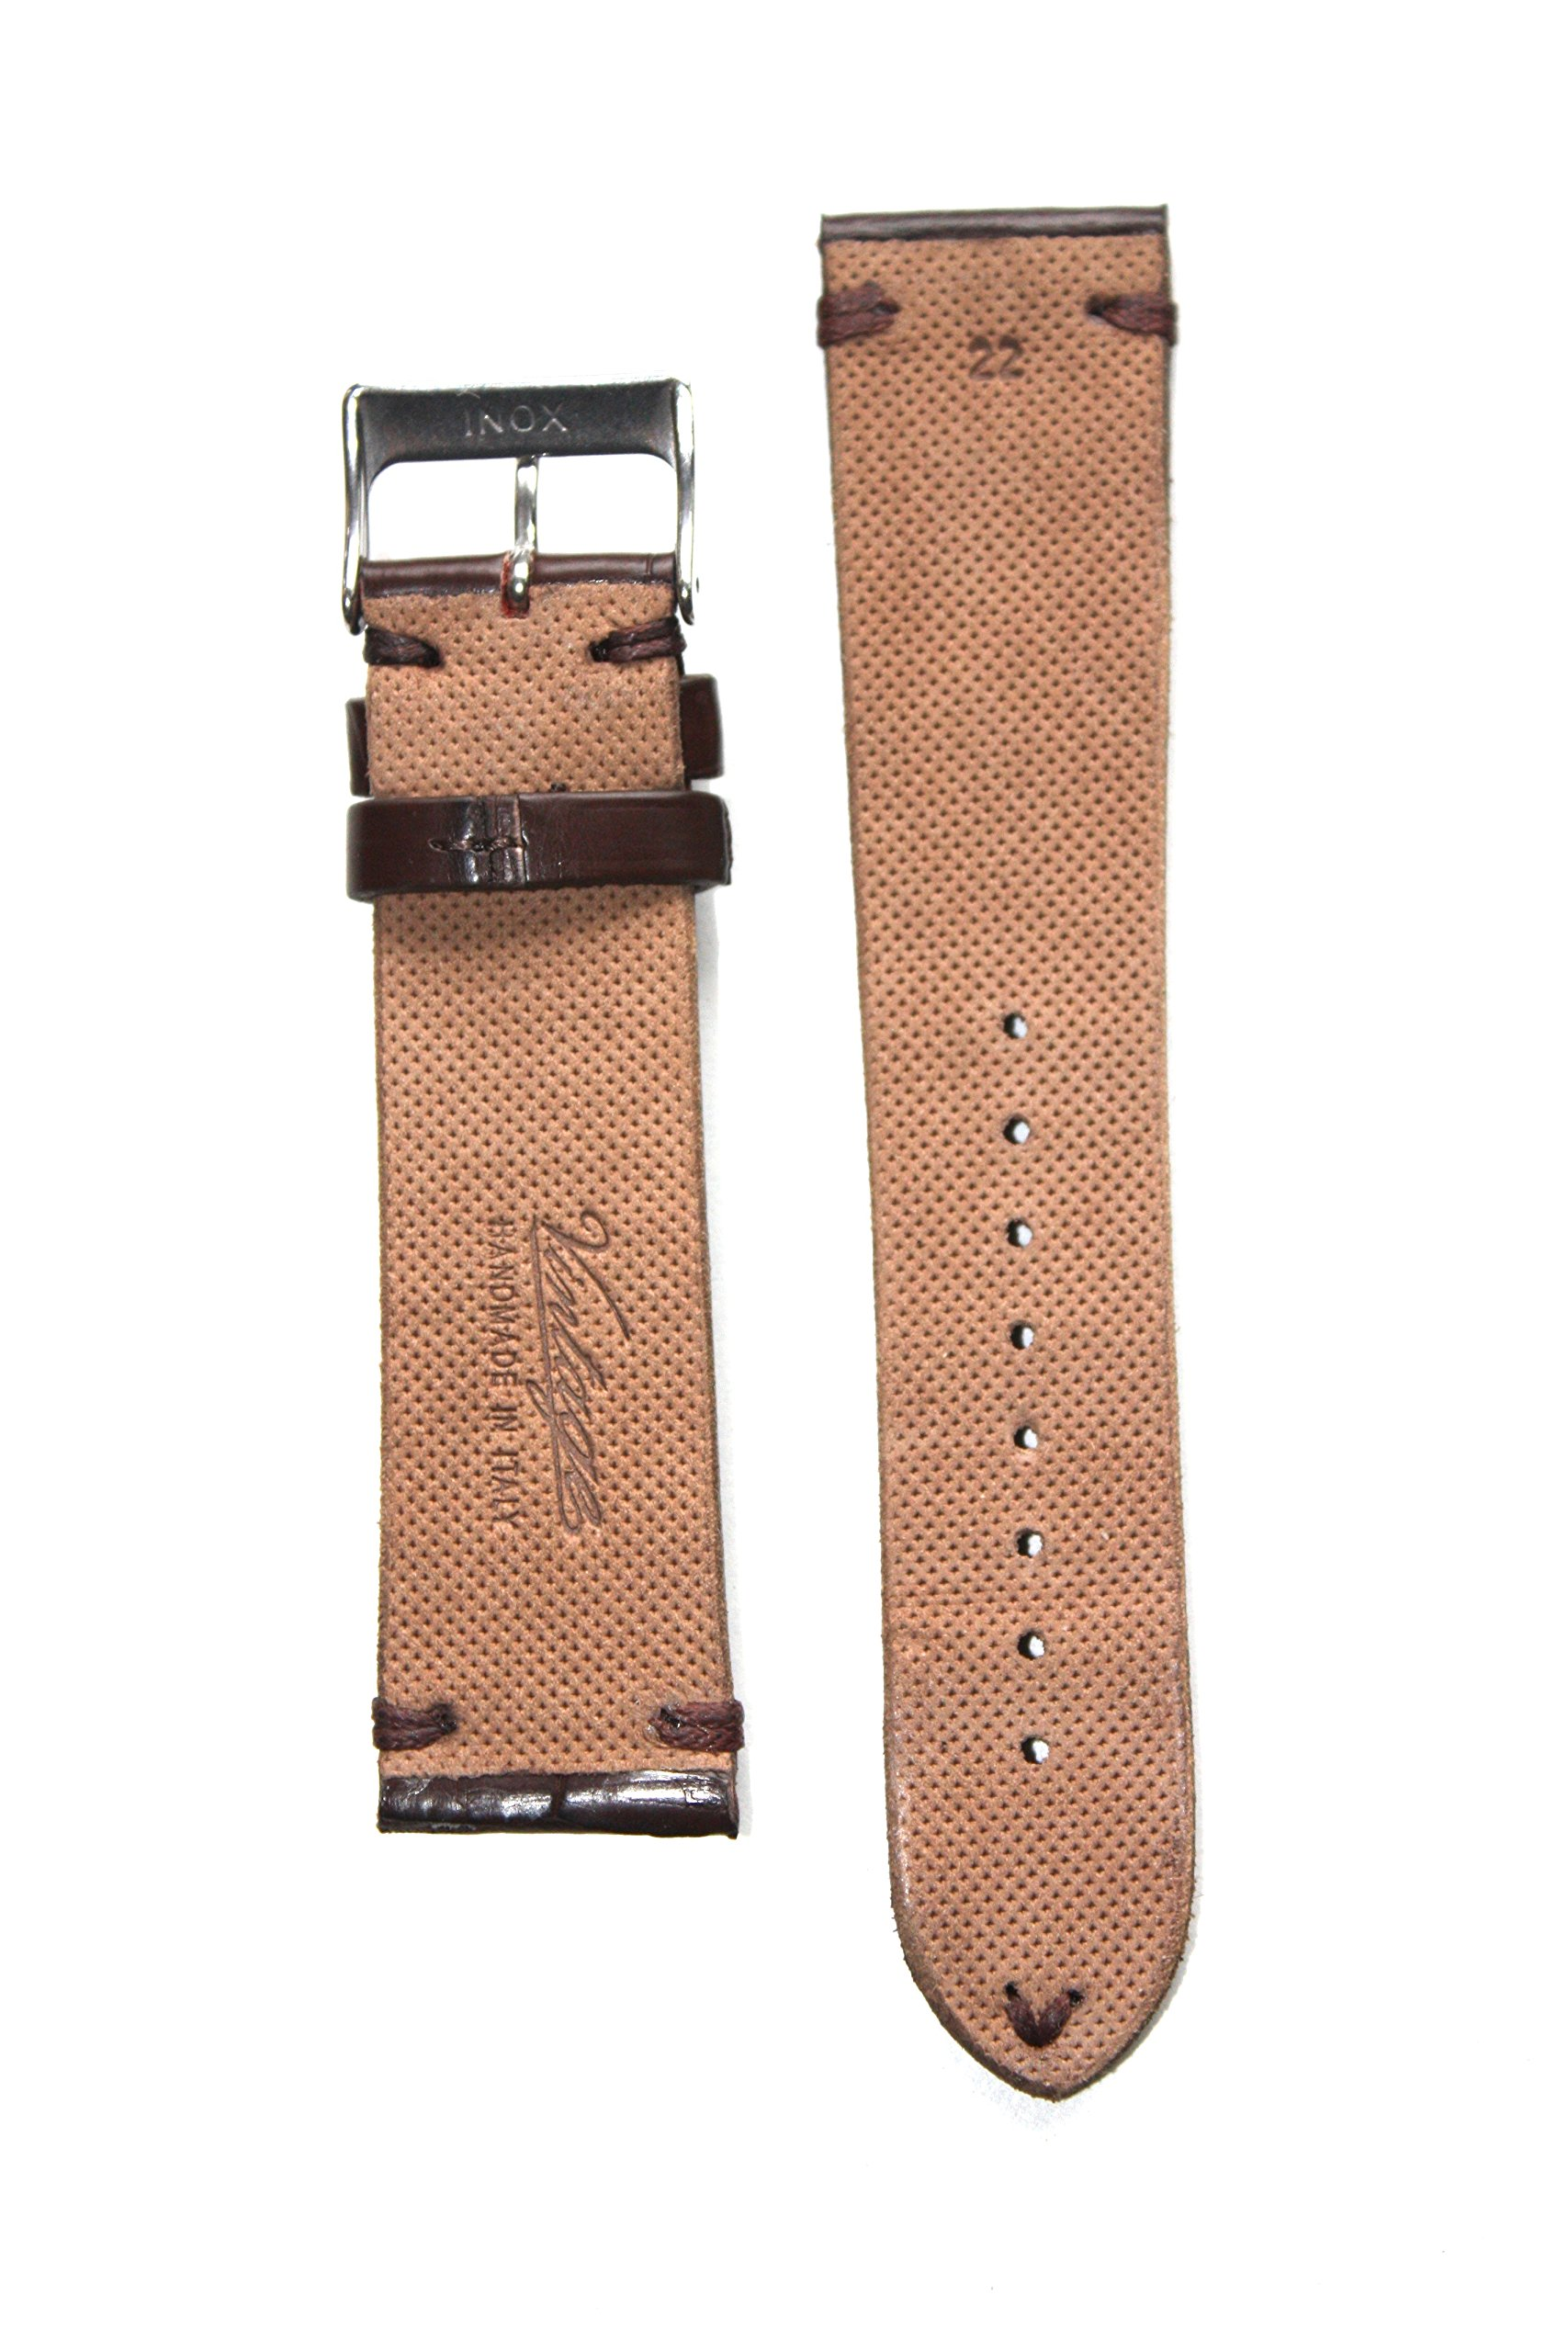 Vintage Collection 20mm Genuine Alligator Matte Brown Watchband from Italy Aero-Lining and S/S Buckle